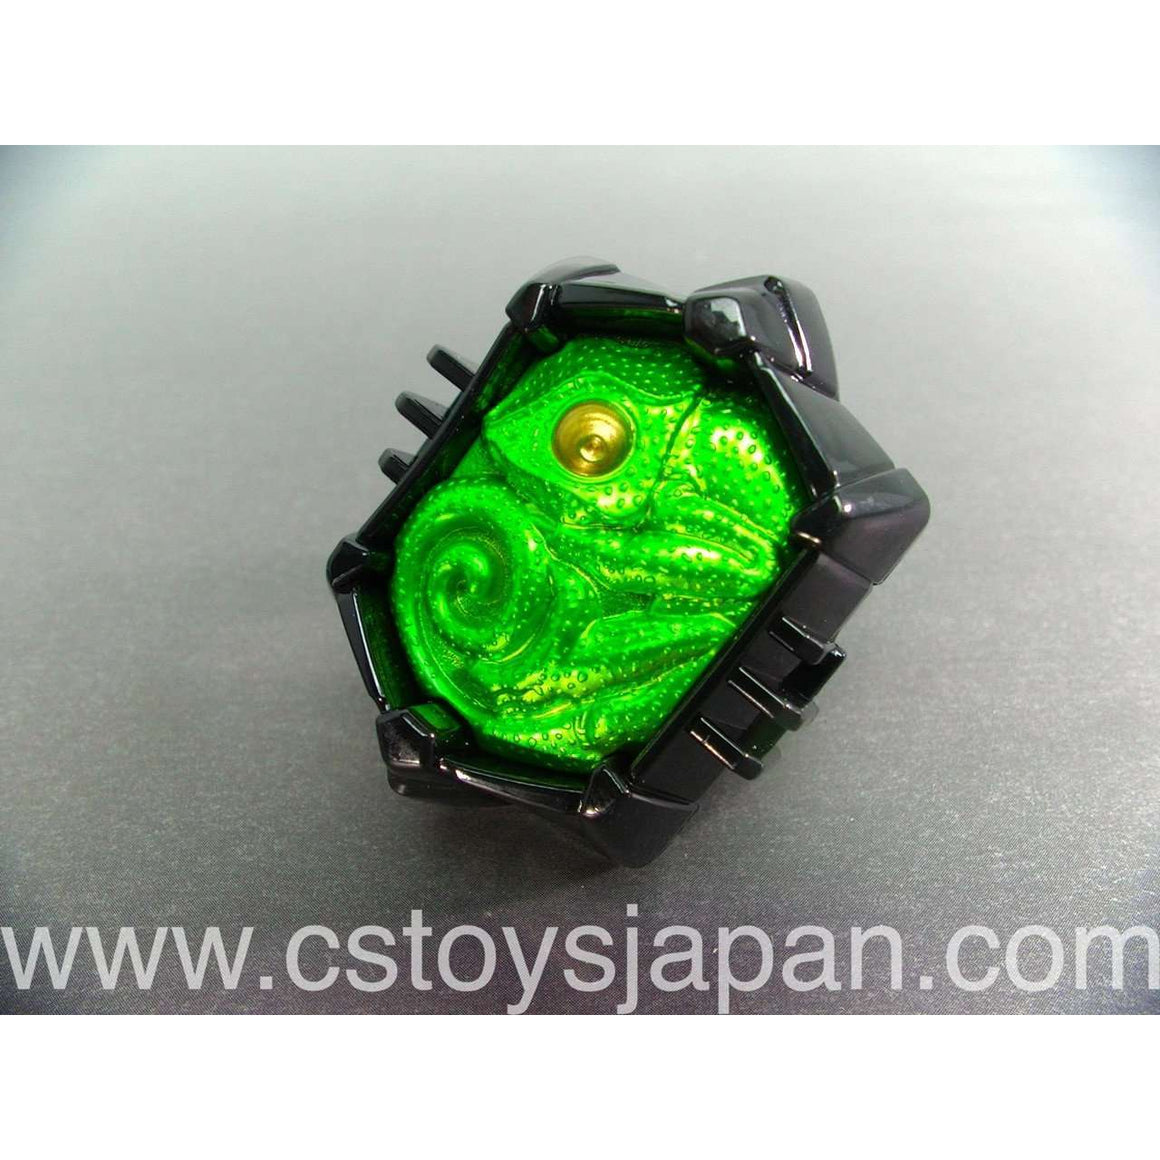 CSTOYS INTERNATIONAL:Kamen Rider Wizard Capsule Toy Wizard Ring 06 Chameleo Wizard Ring